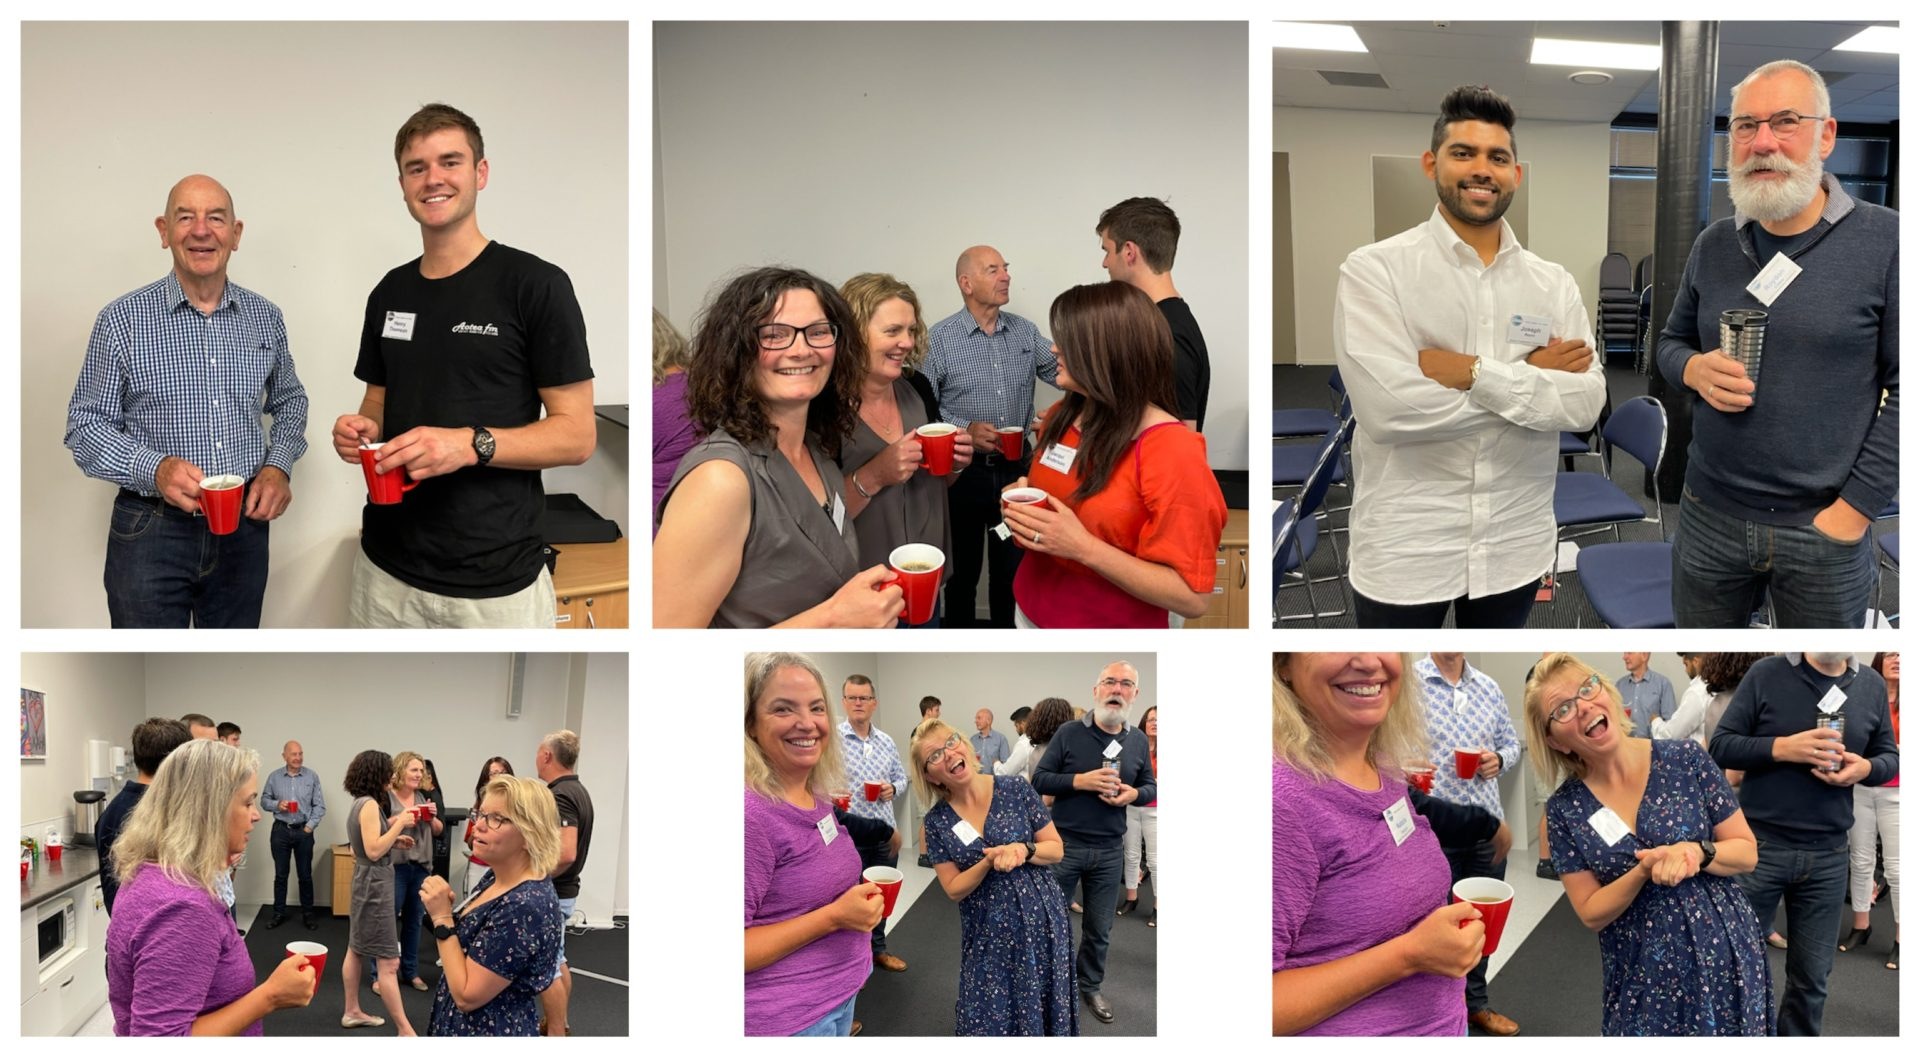 A collage made up of six pictures of different groups chatting over a cup of tea